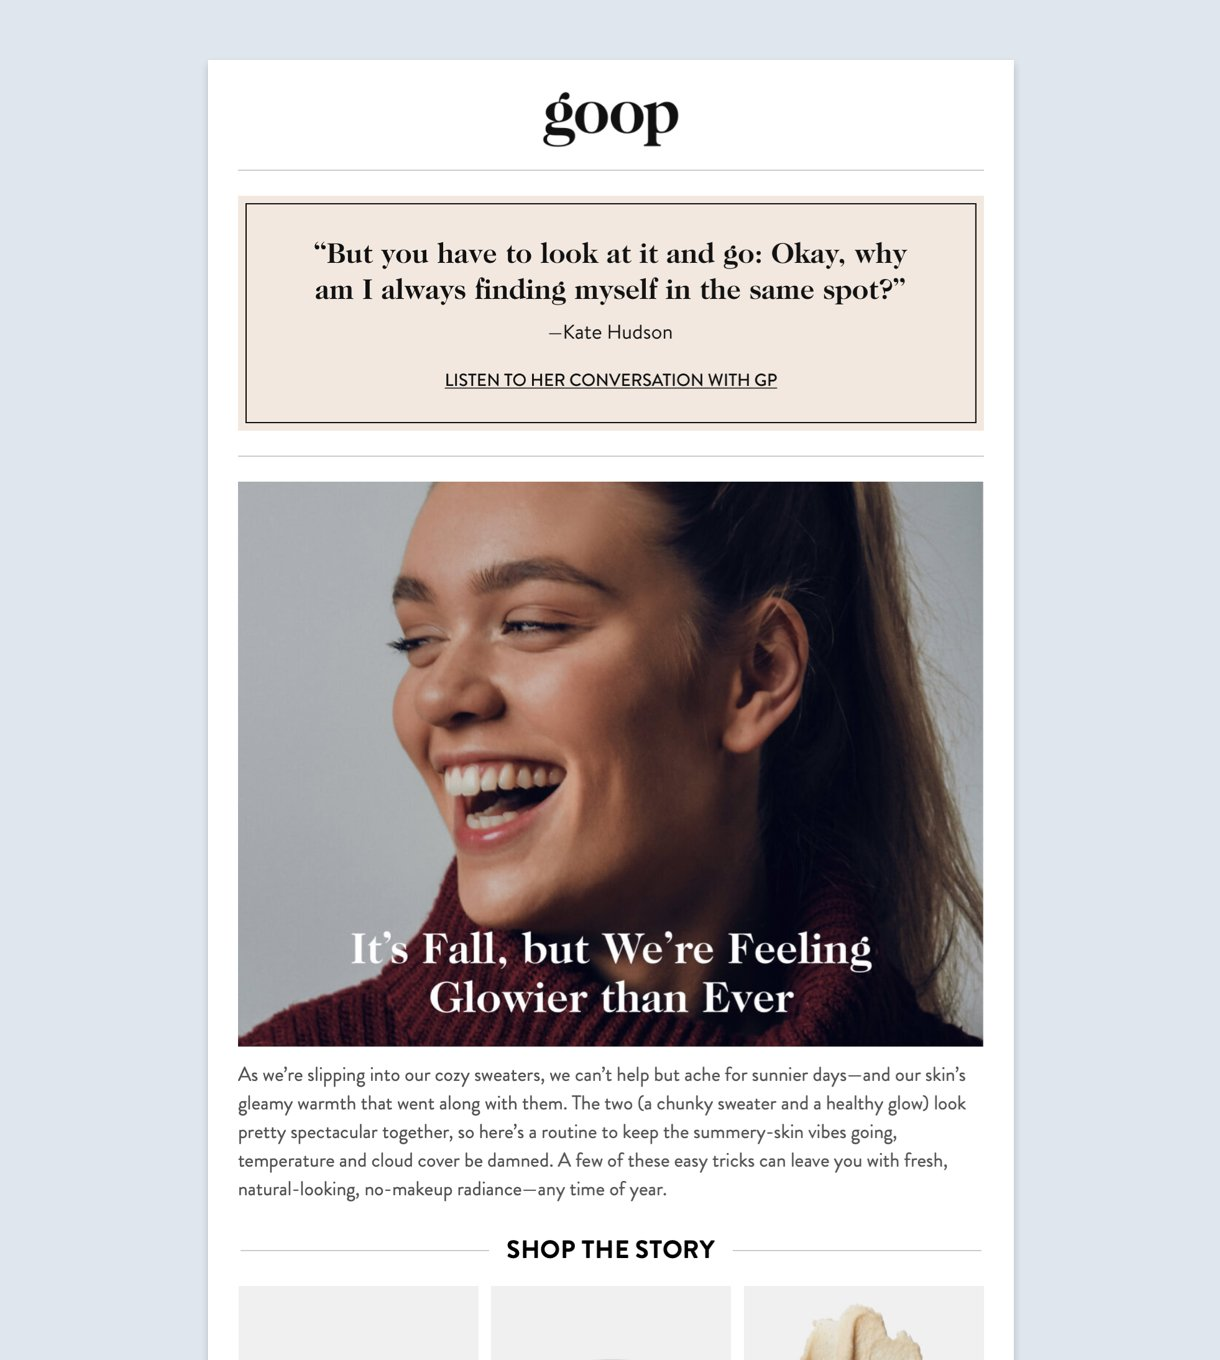 Goop email newsletter example girl smiling background white minimalist